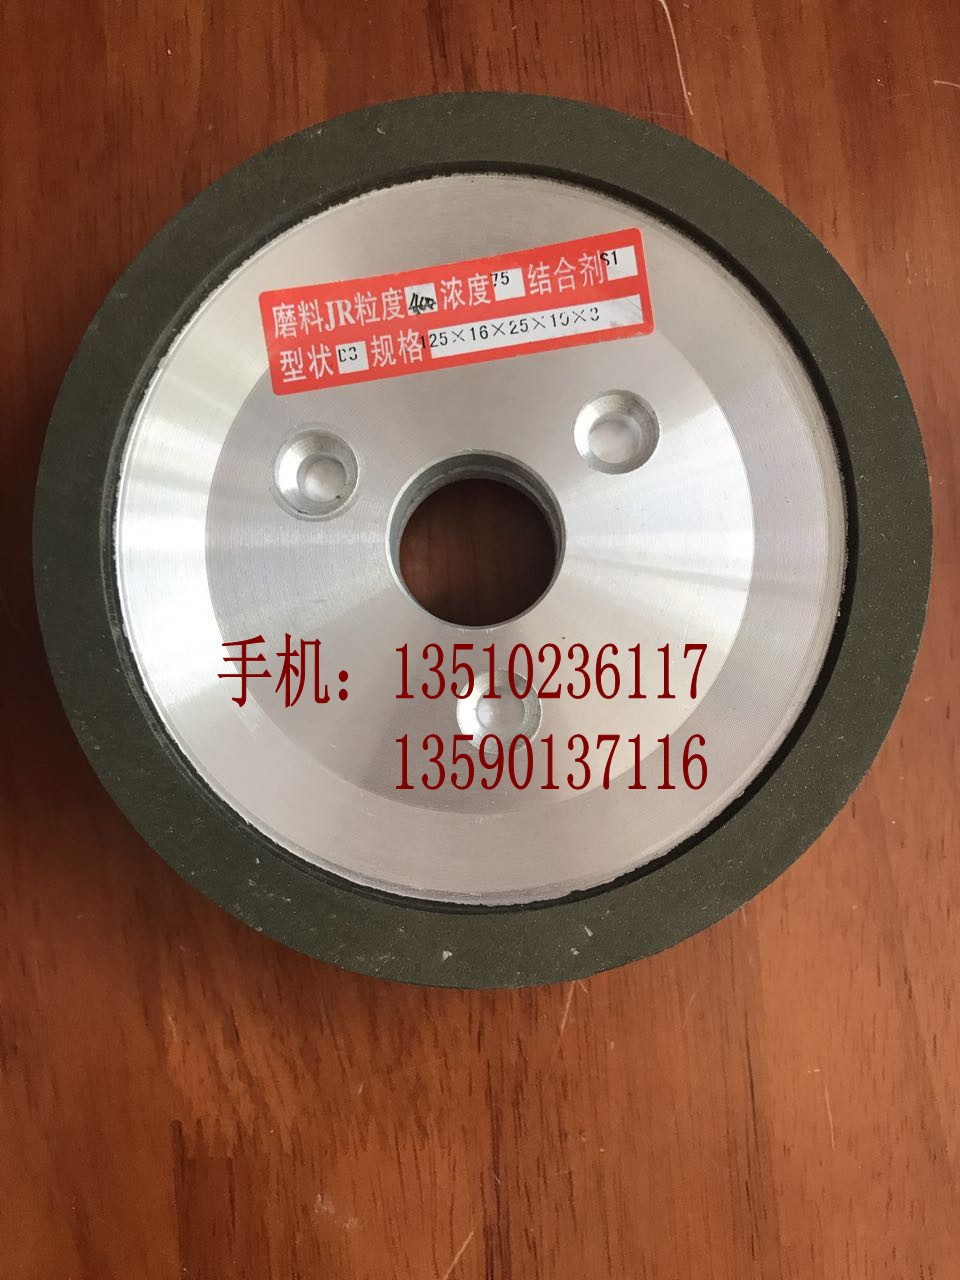 Disc type grinding machine grinding wheel grinding diamond wheel disc three alloy wheel